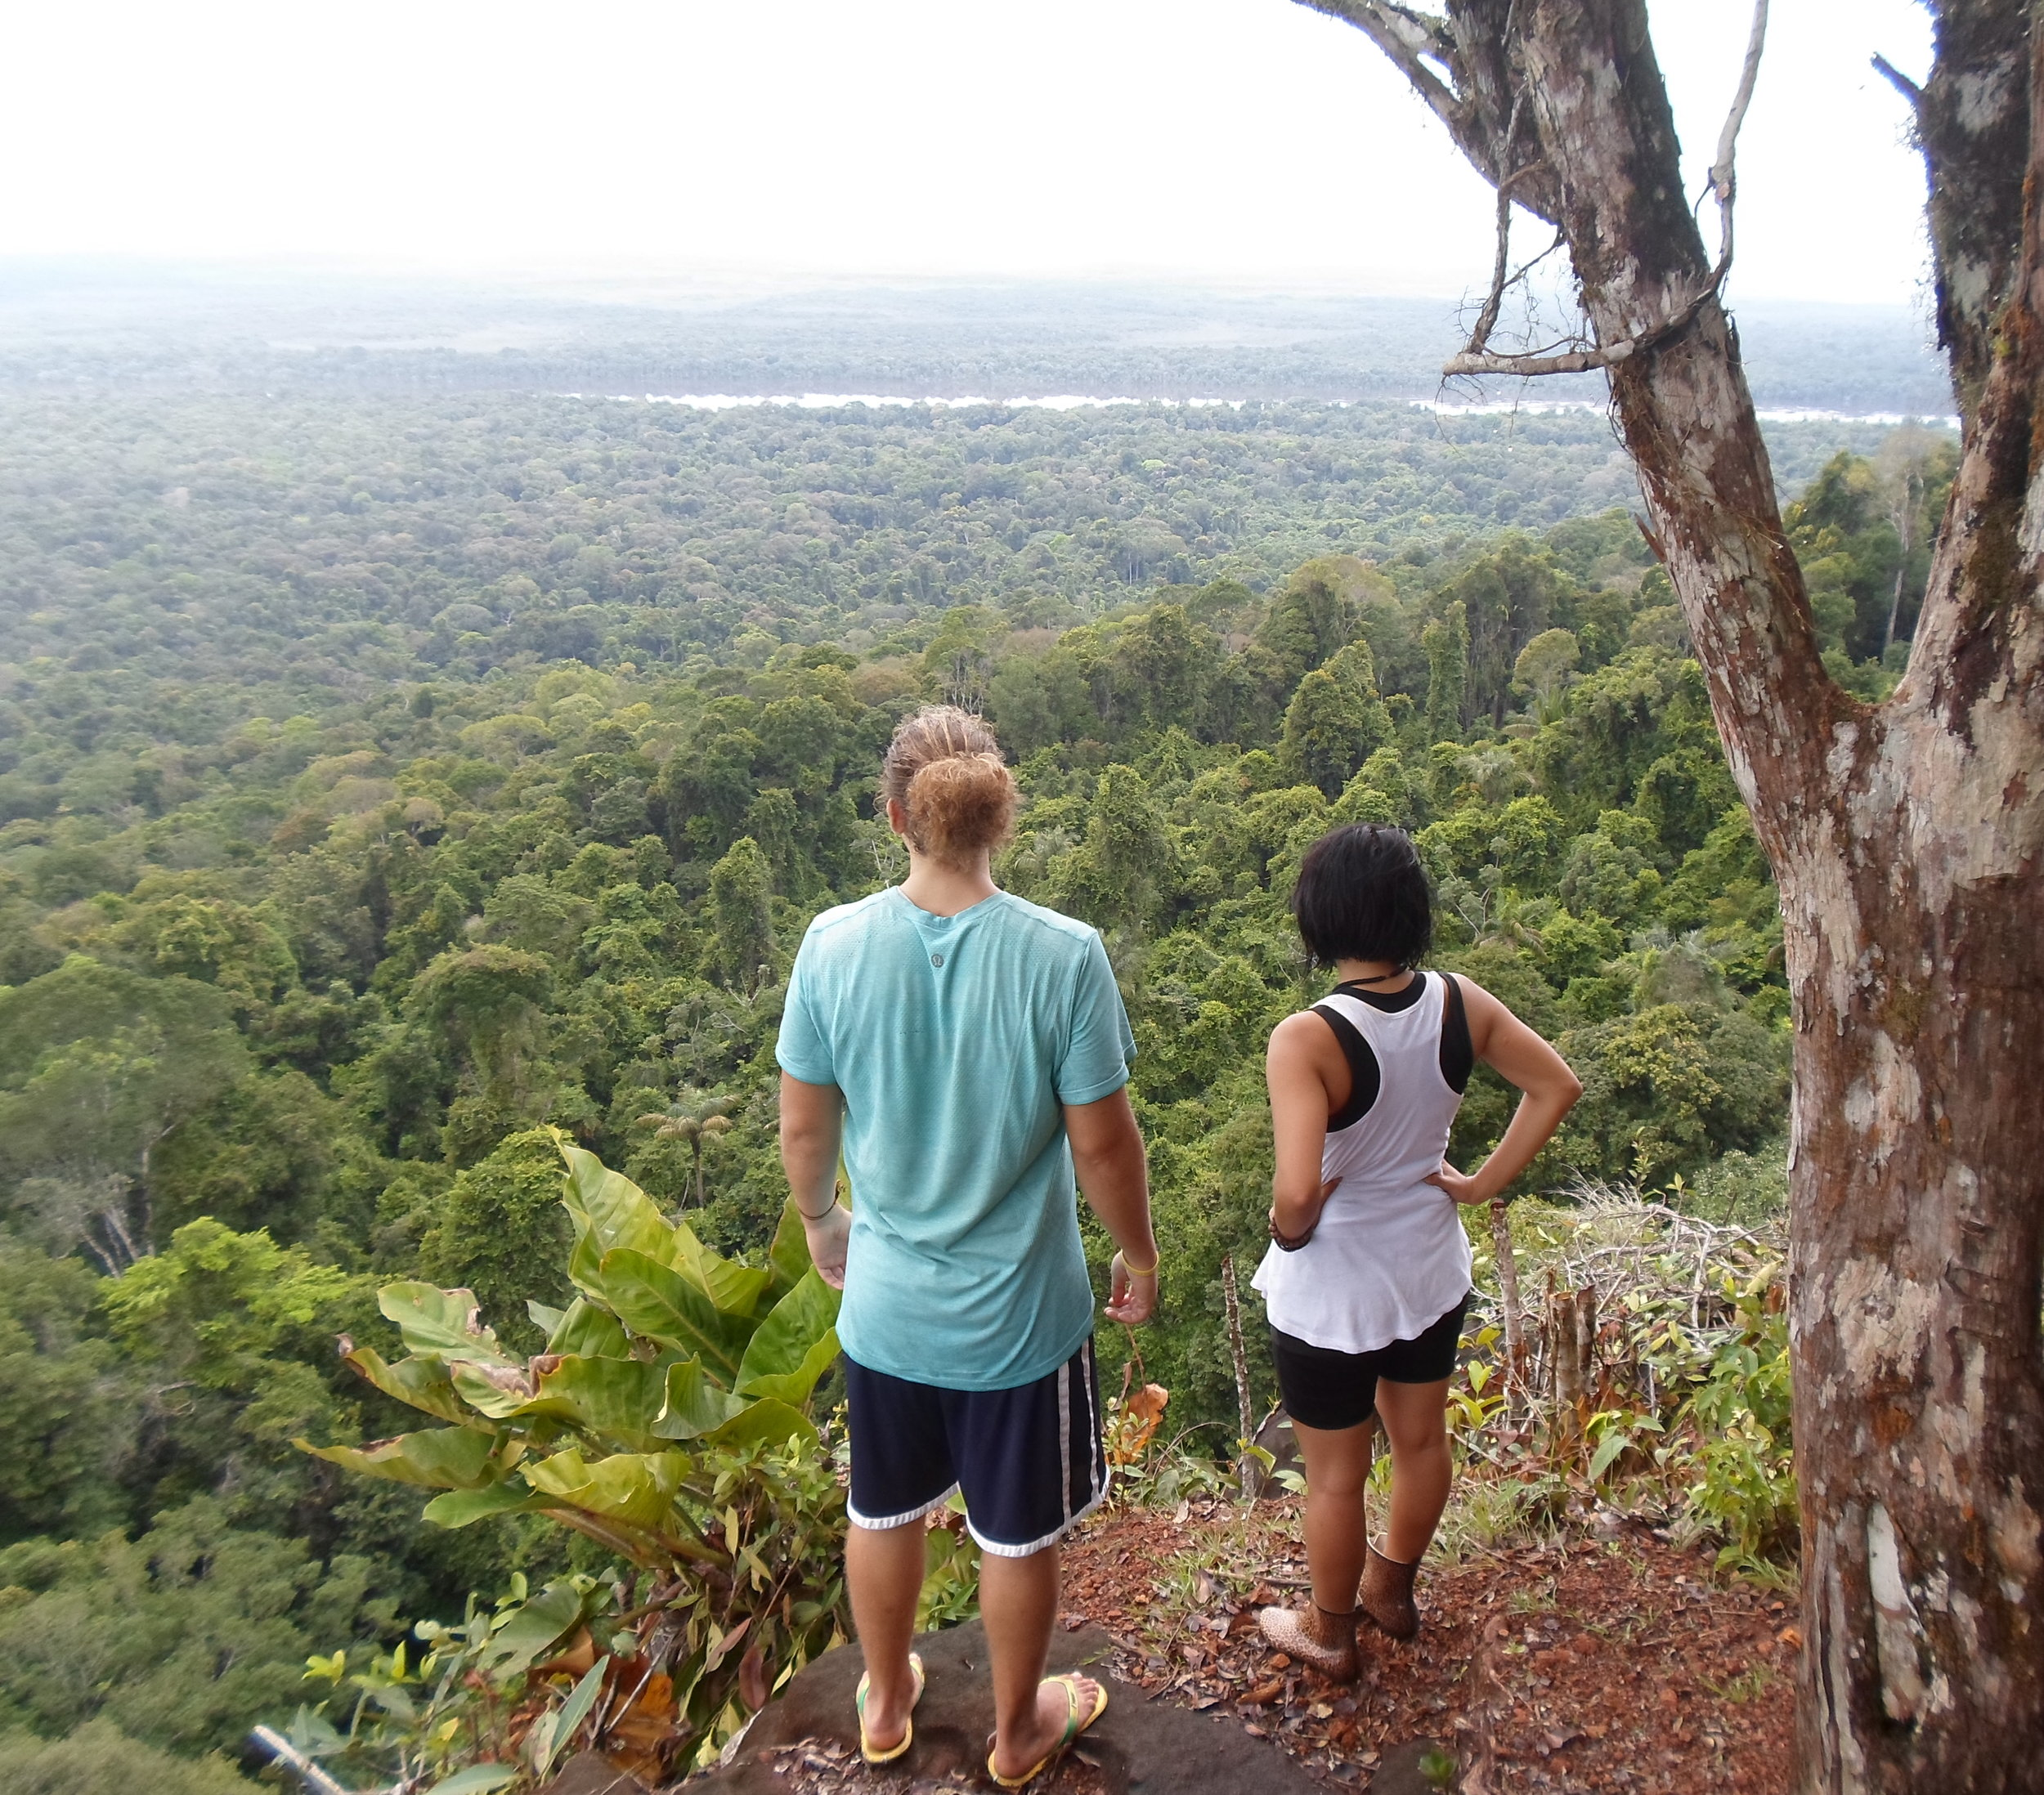 The feeling of the Guyanese jungle stays with you long after you leave